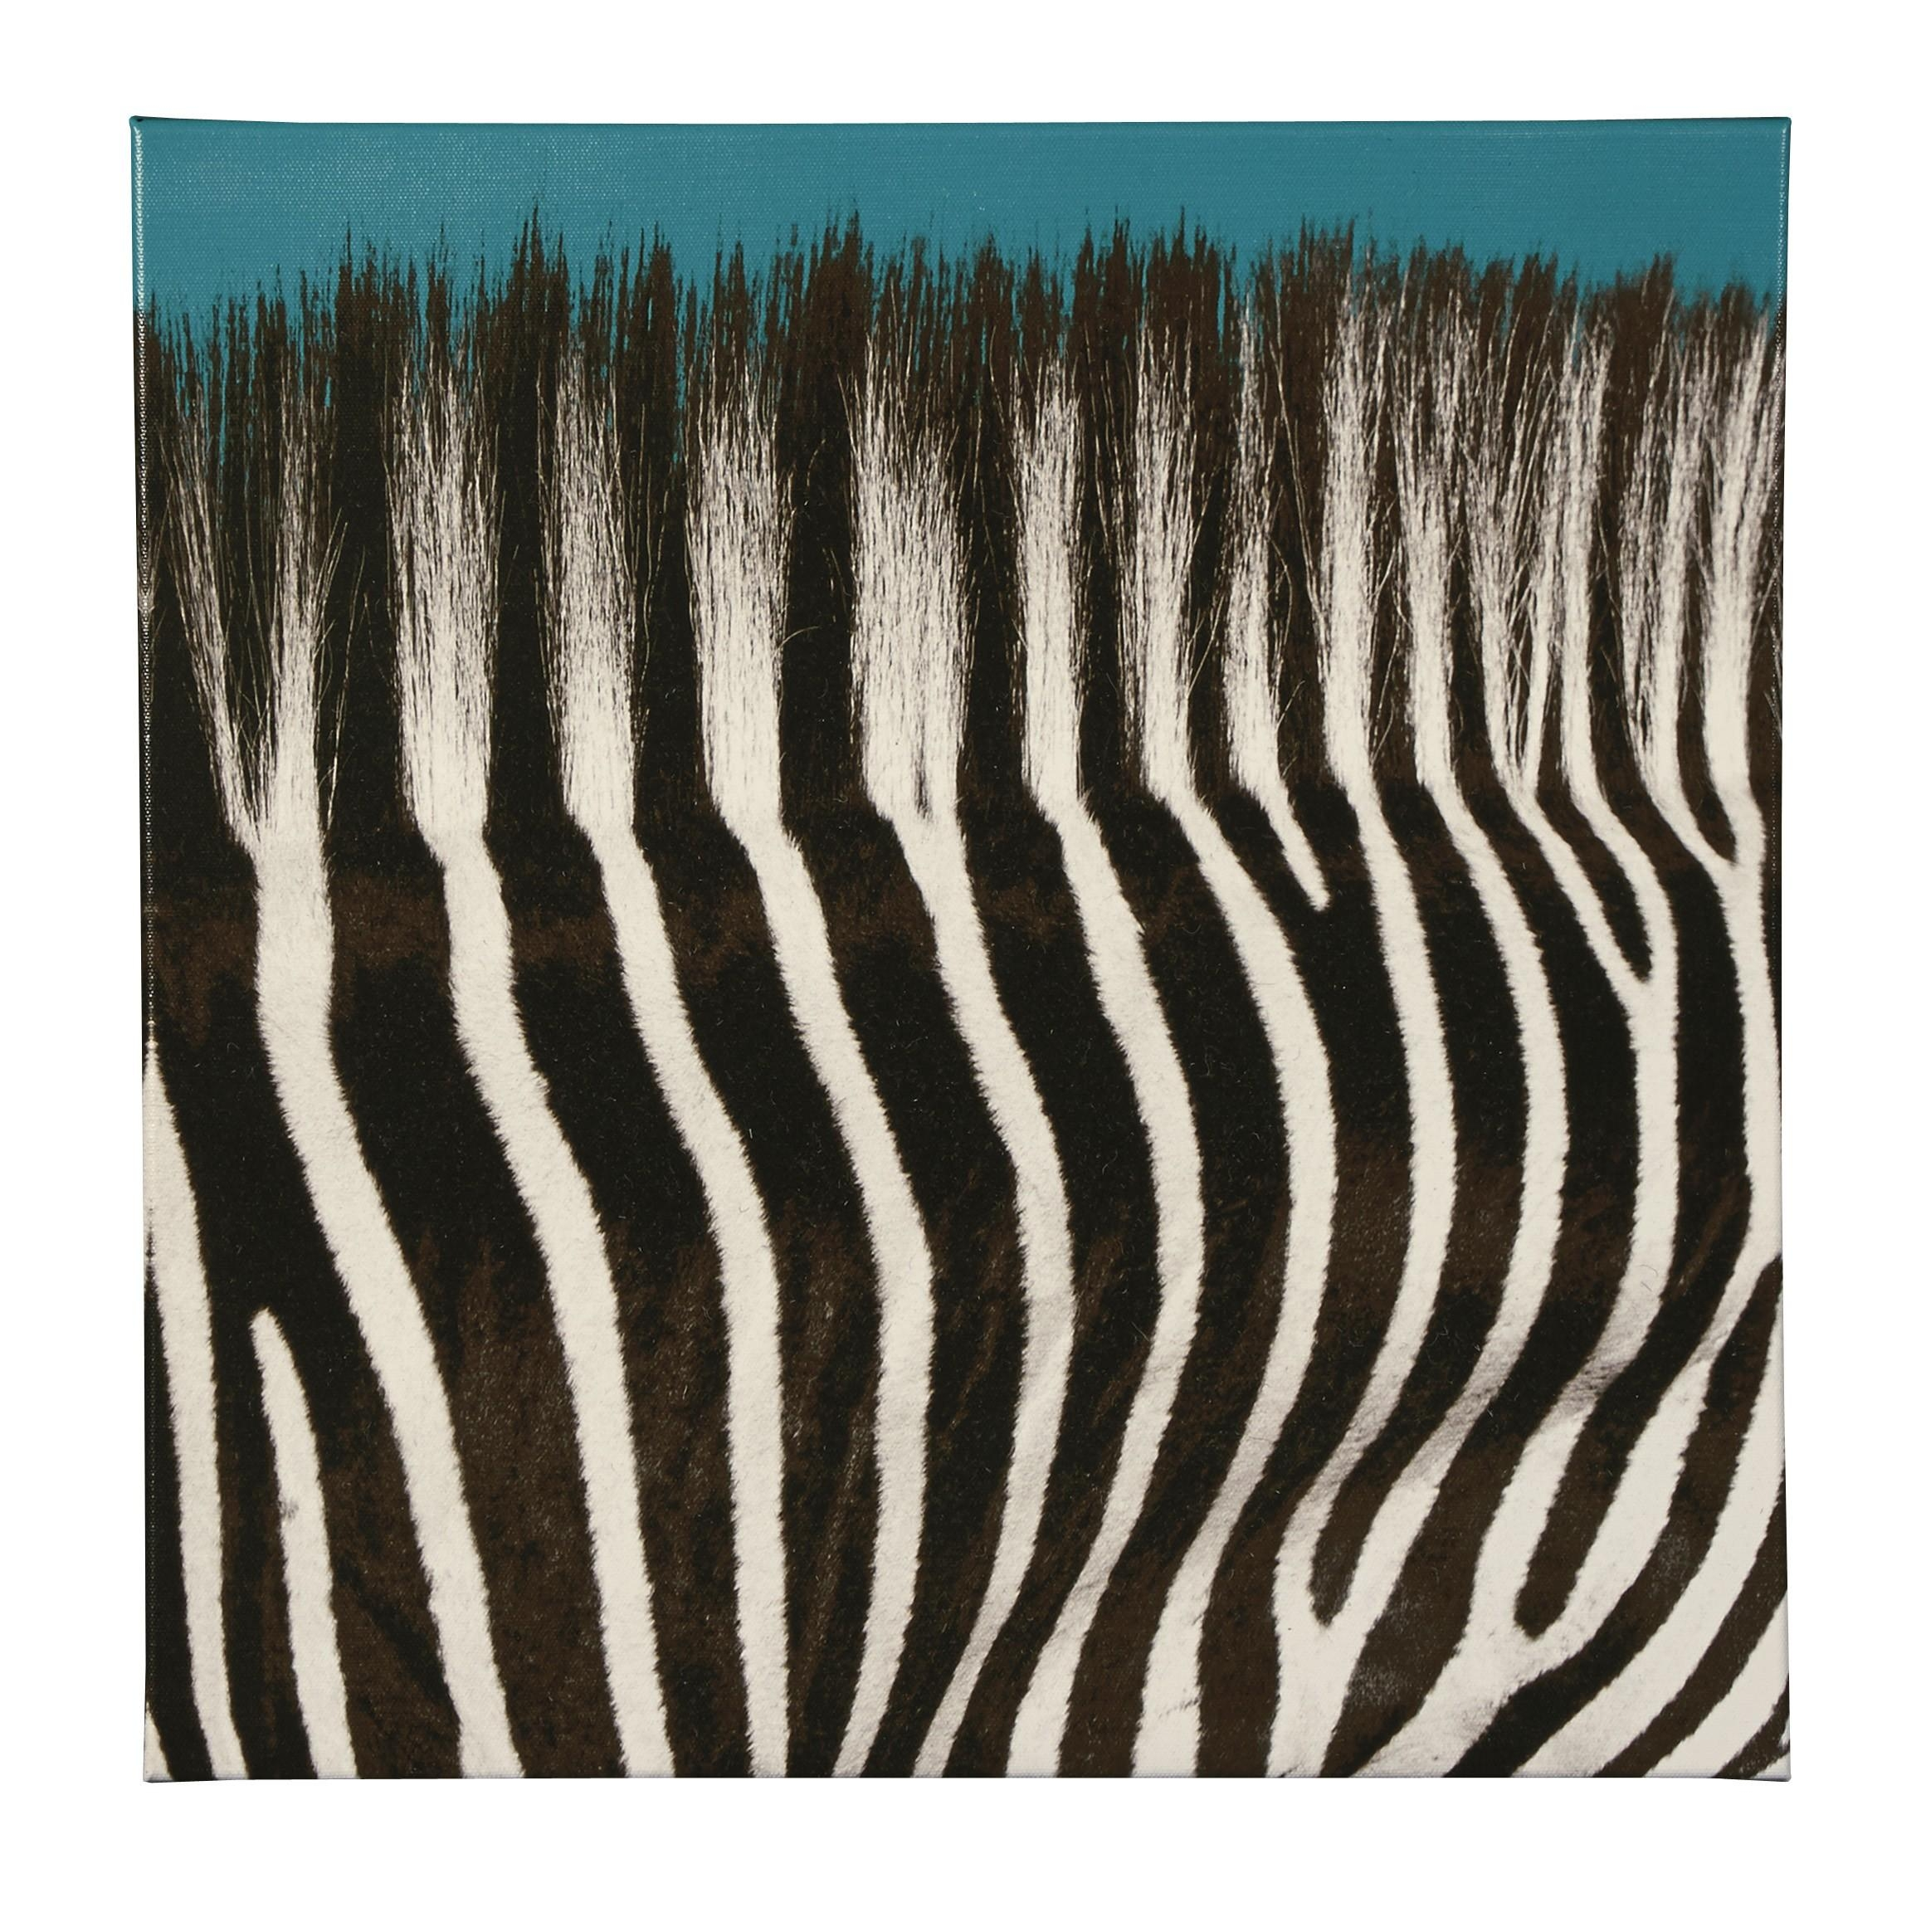 Jabbar Black/white/teal Wall Art – S&s Furniture Inc In Black And Teal Wall Art (Image 8 of 20)